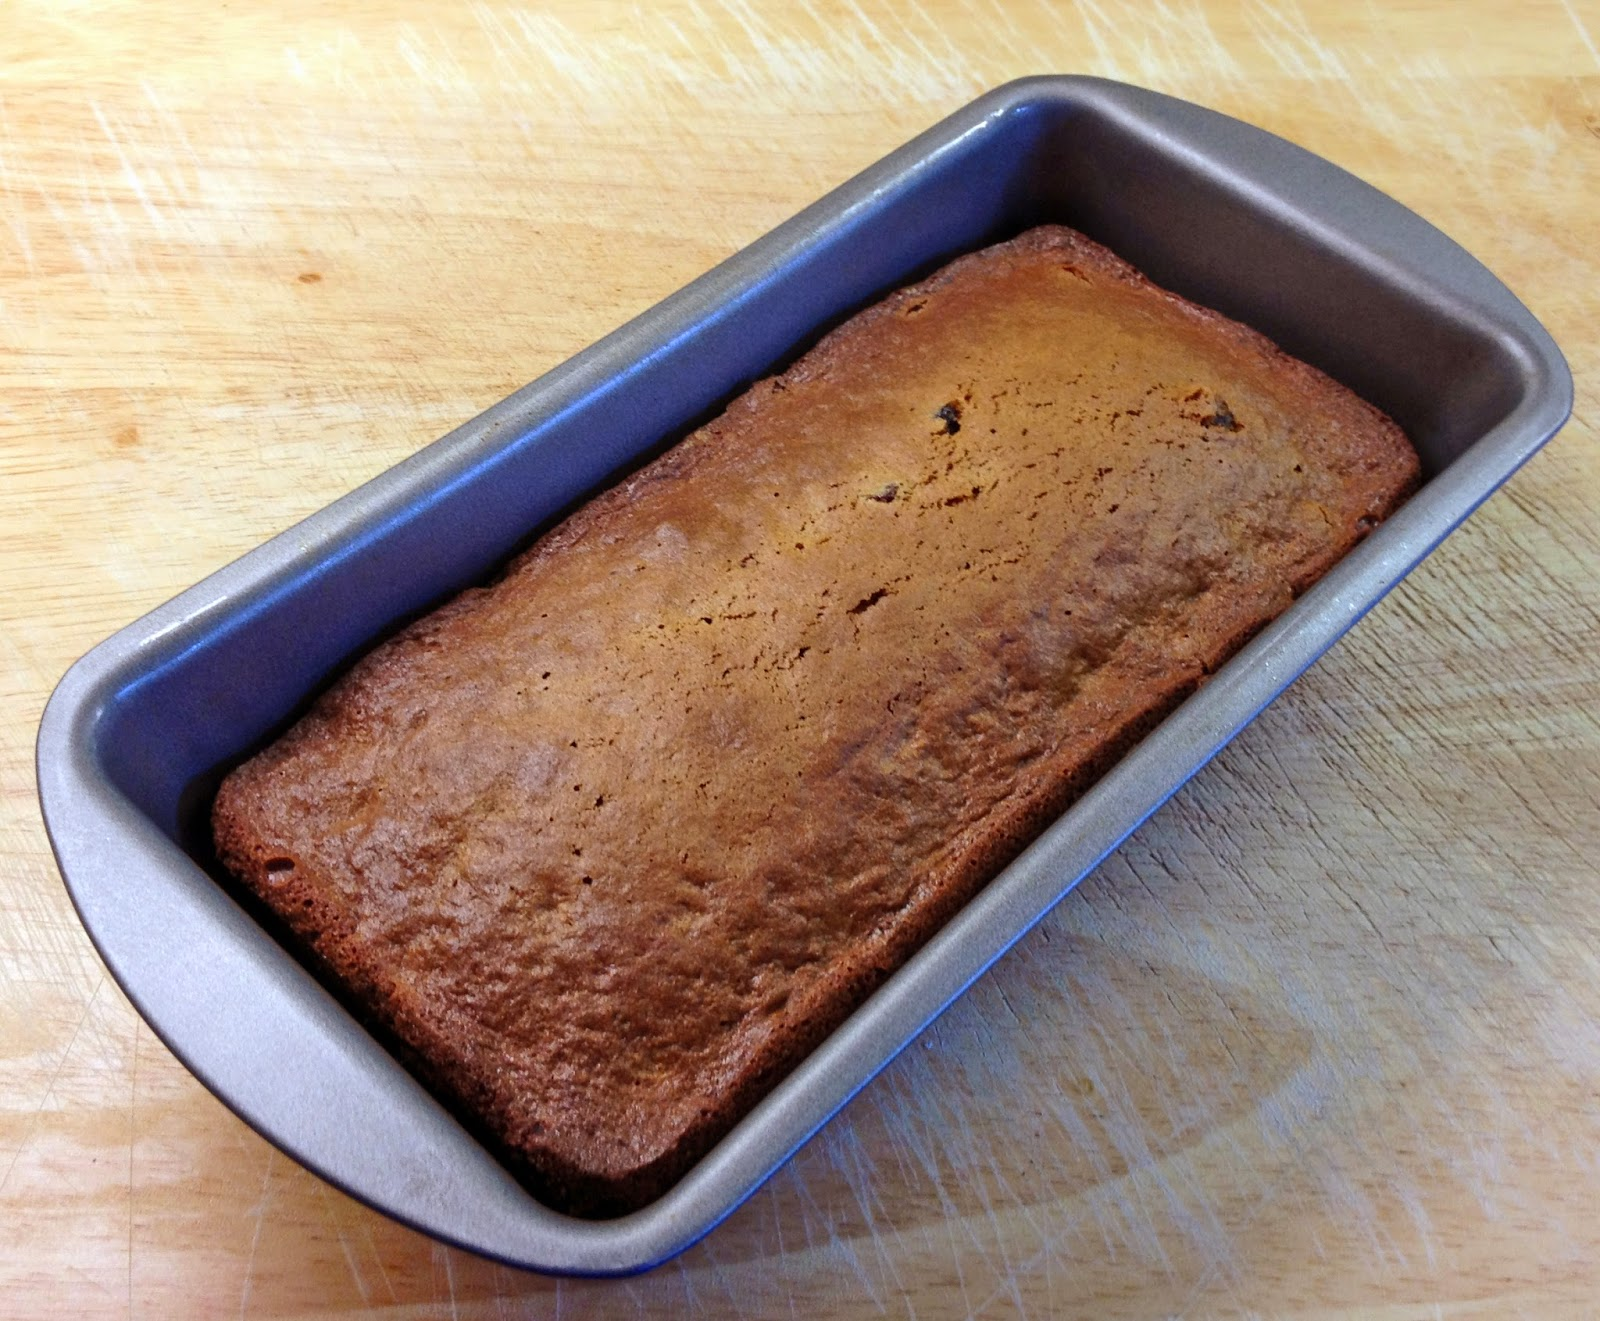 malt loaf gets its chewy texture and malty flavour from